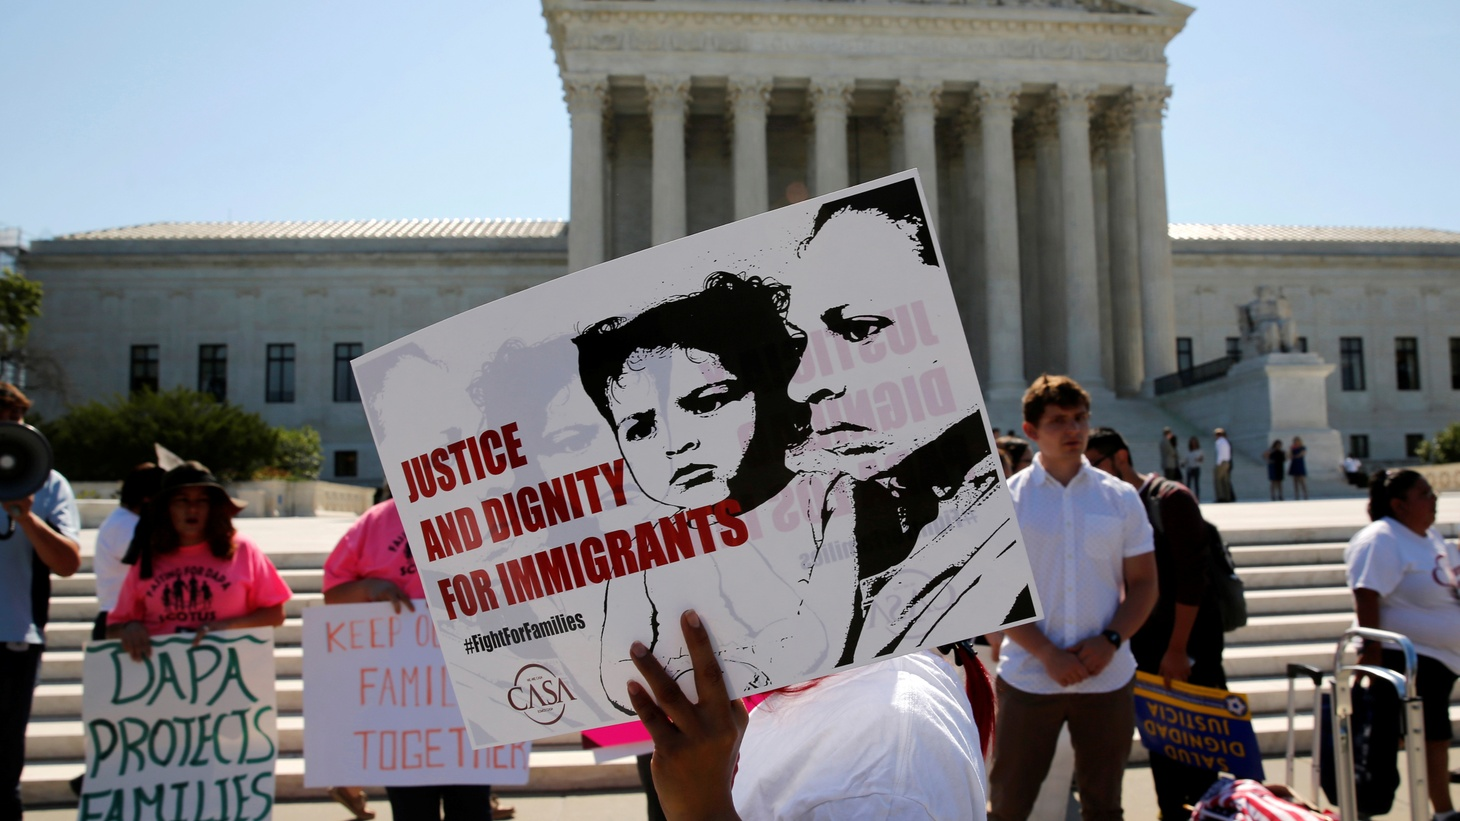 Two U.S. Supreme Court decisions out Thursday have major implications. The 4-4 tie on President Obama's immigration plan effectively blocks the president's actions protecting some 5 million undocumented immigrants from deportation. The court also decided to uphold affirmative action in a Texas case.